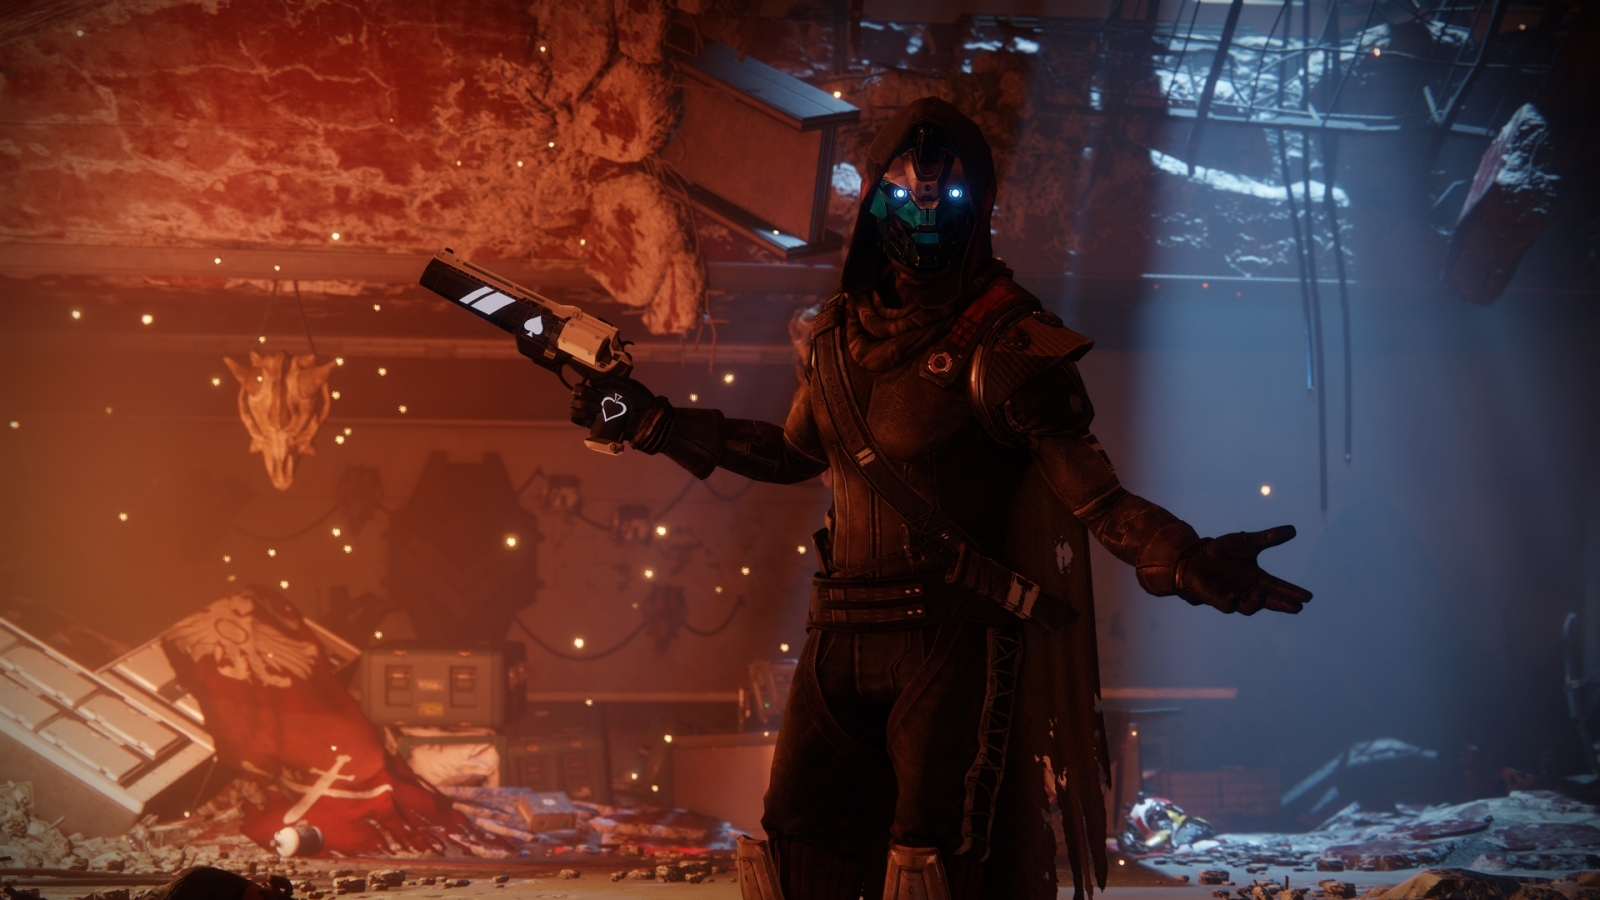 Destiny 2 Open Beta Has Been Extended For a Few More Days